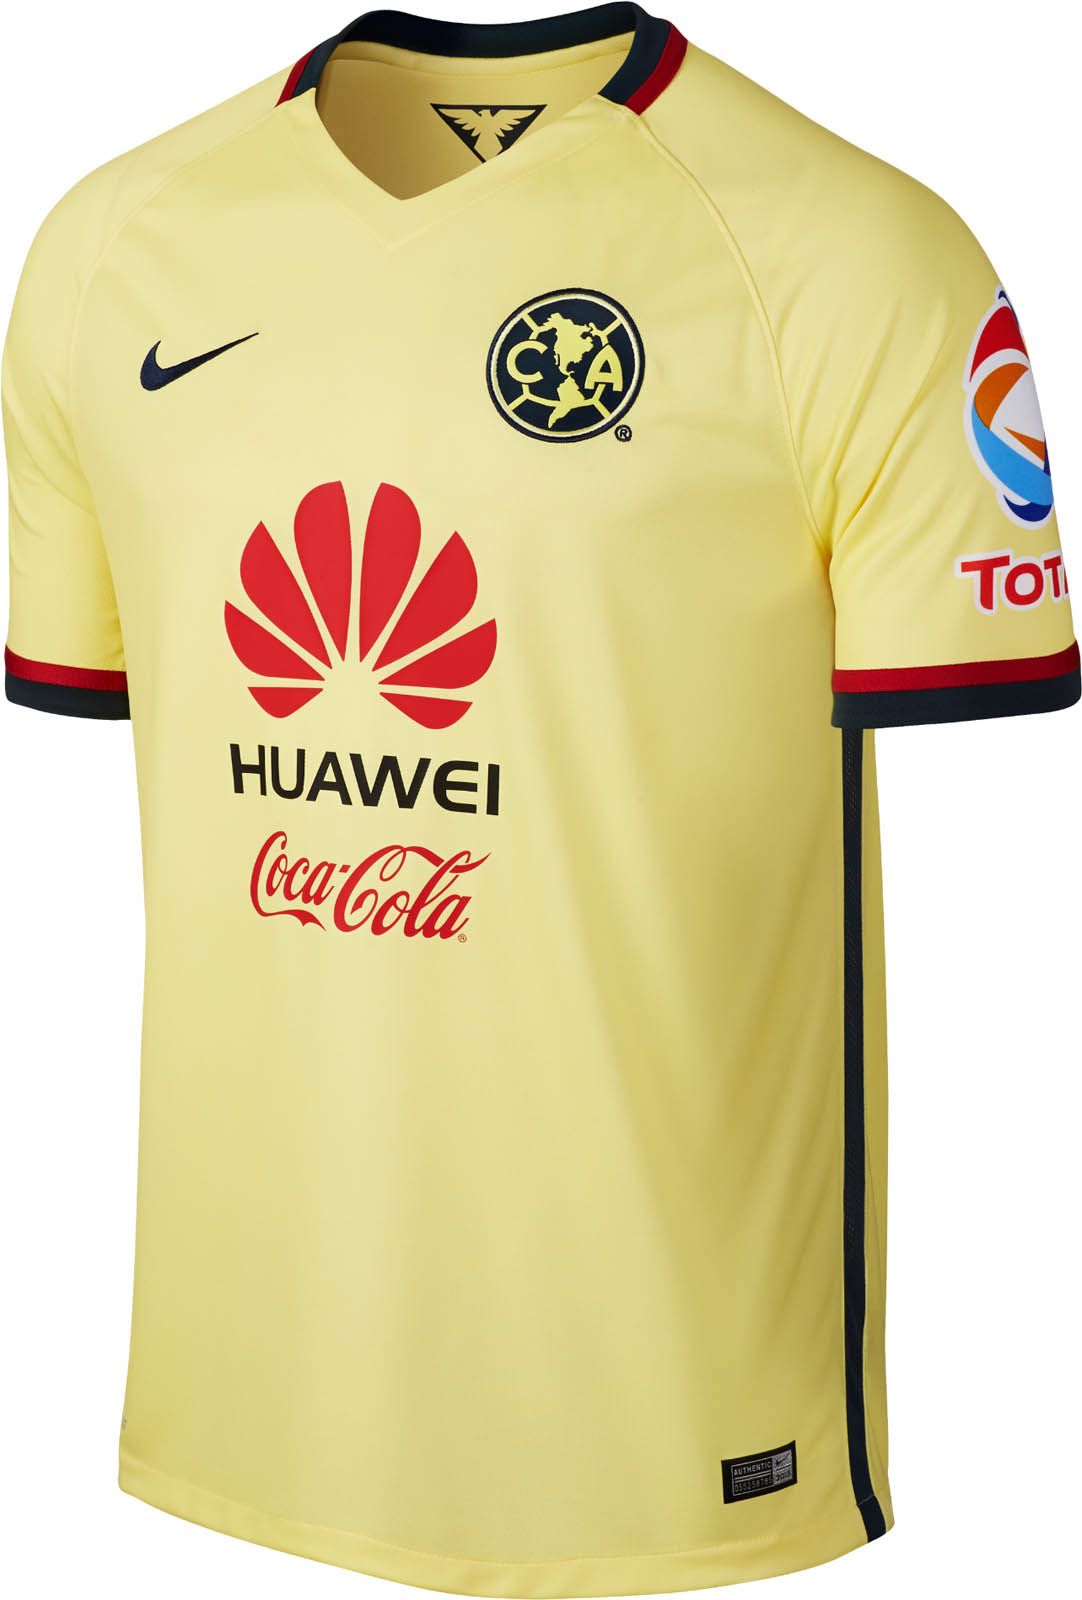 Club am rica 2015 16 home and away kits released footy for Cuarto kit del america